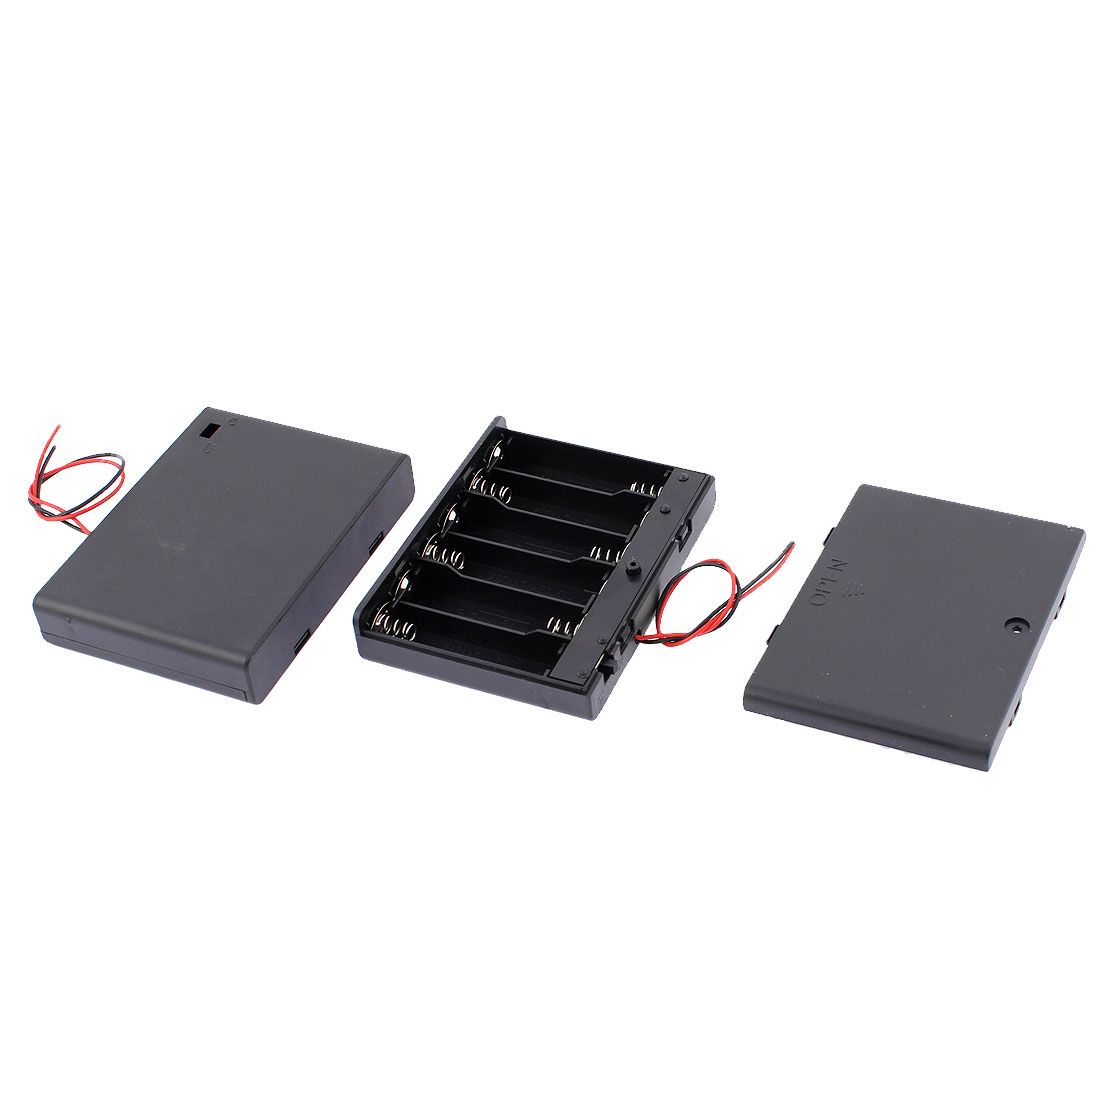 2 Pcs Plastic 2 Wires 6 x 1.5V AA Battery Holder Box Case Storage w Lid